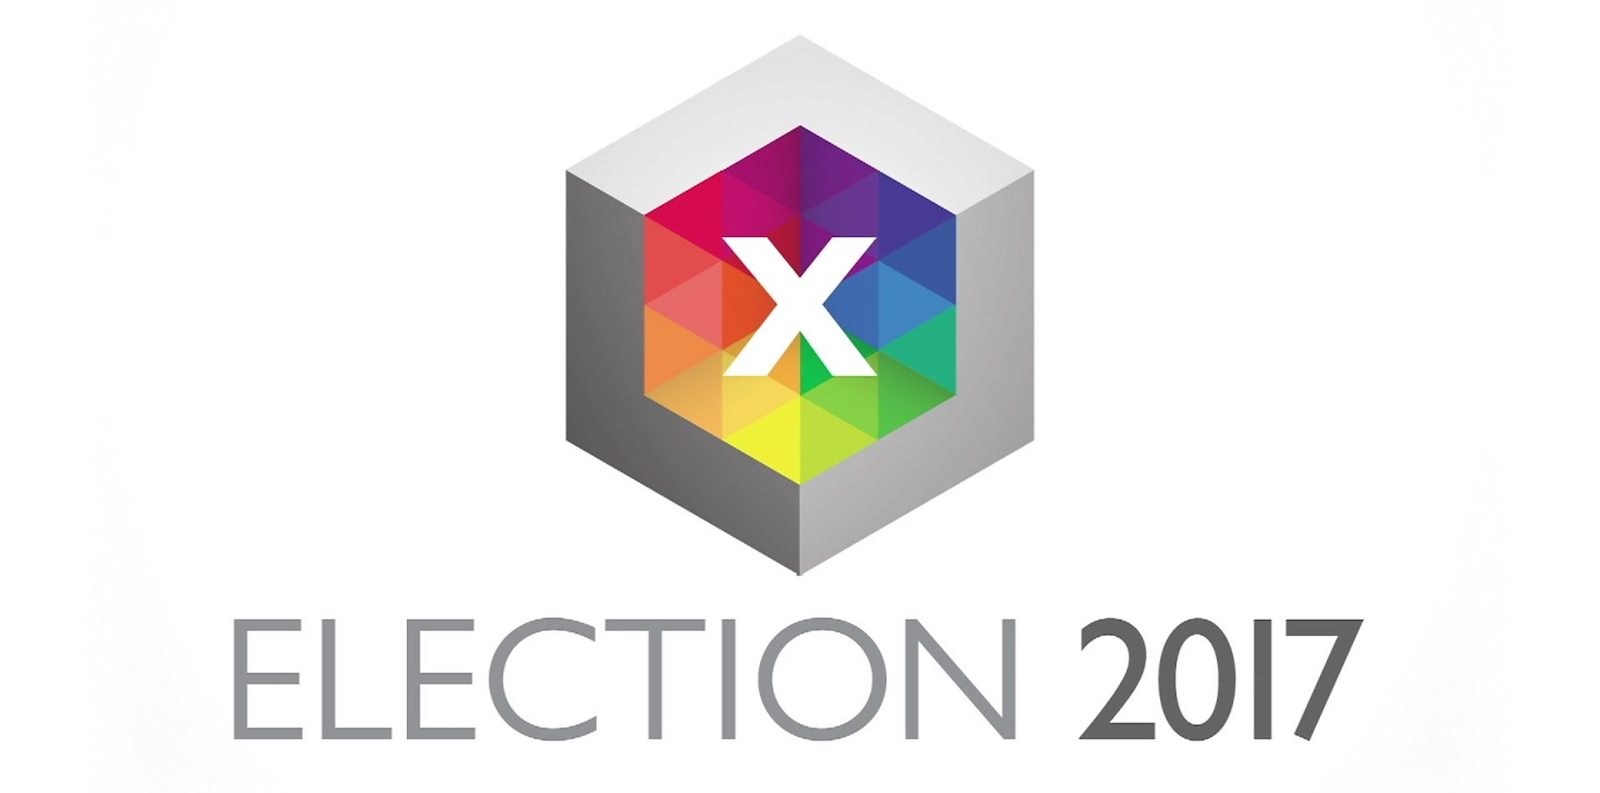 The general election, 8 June 2017